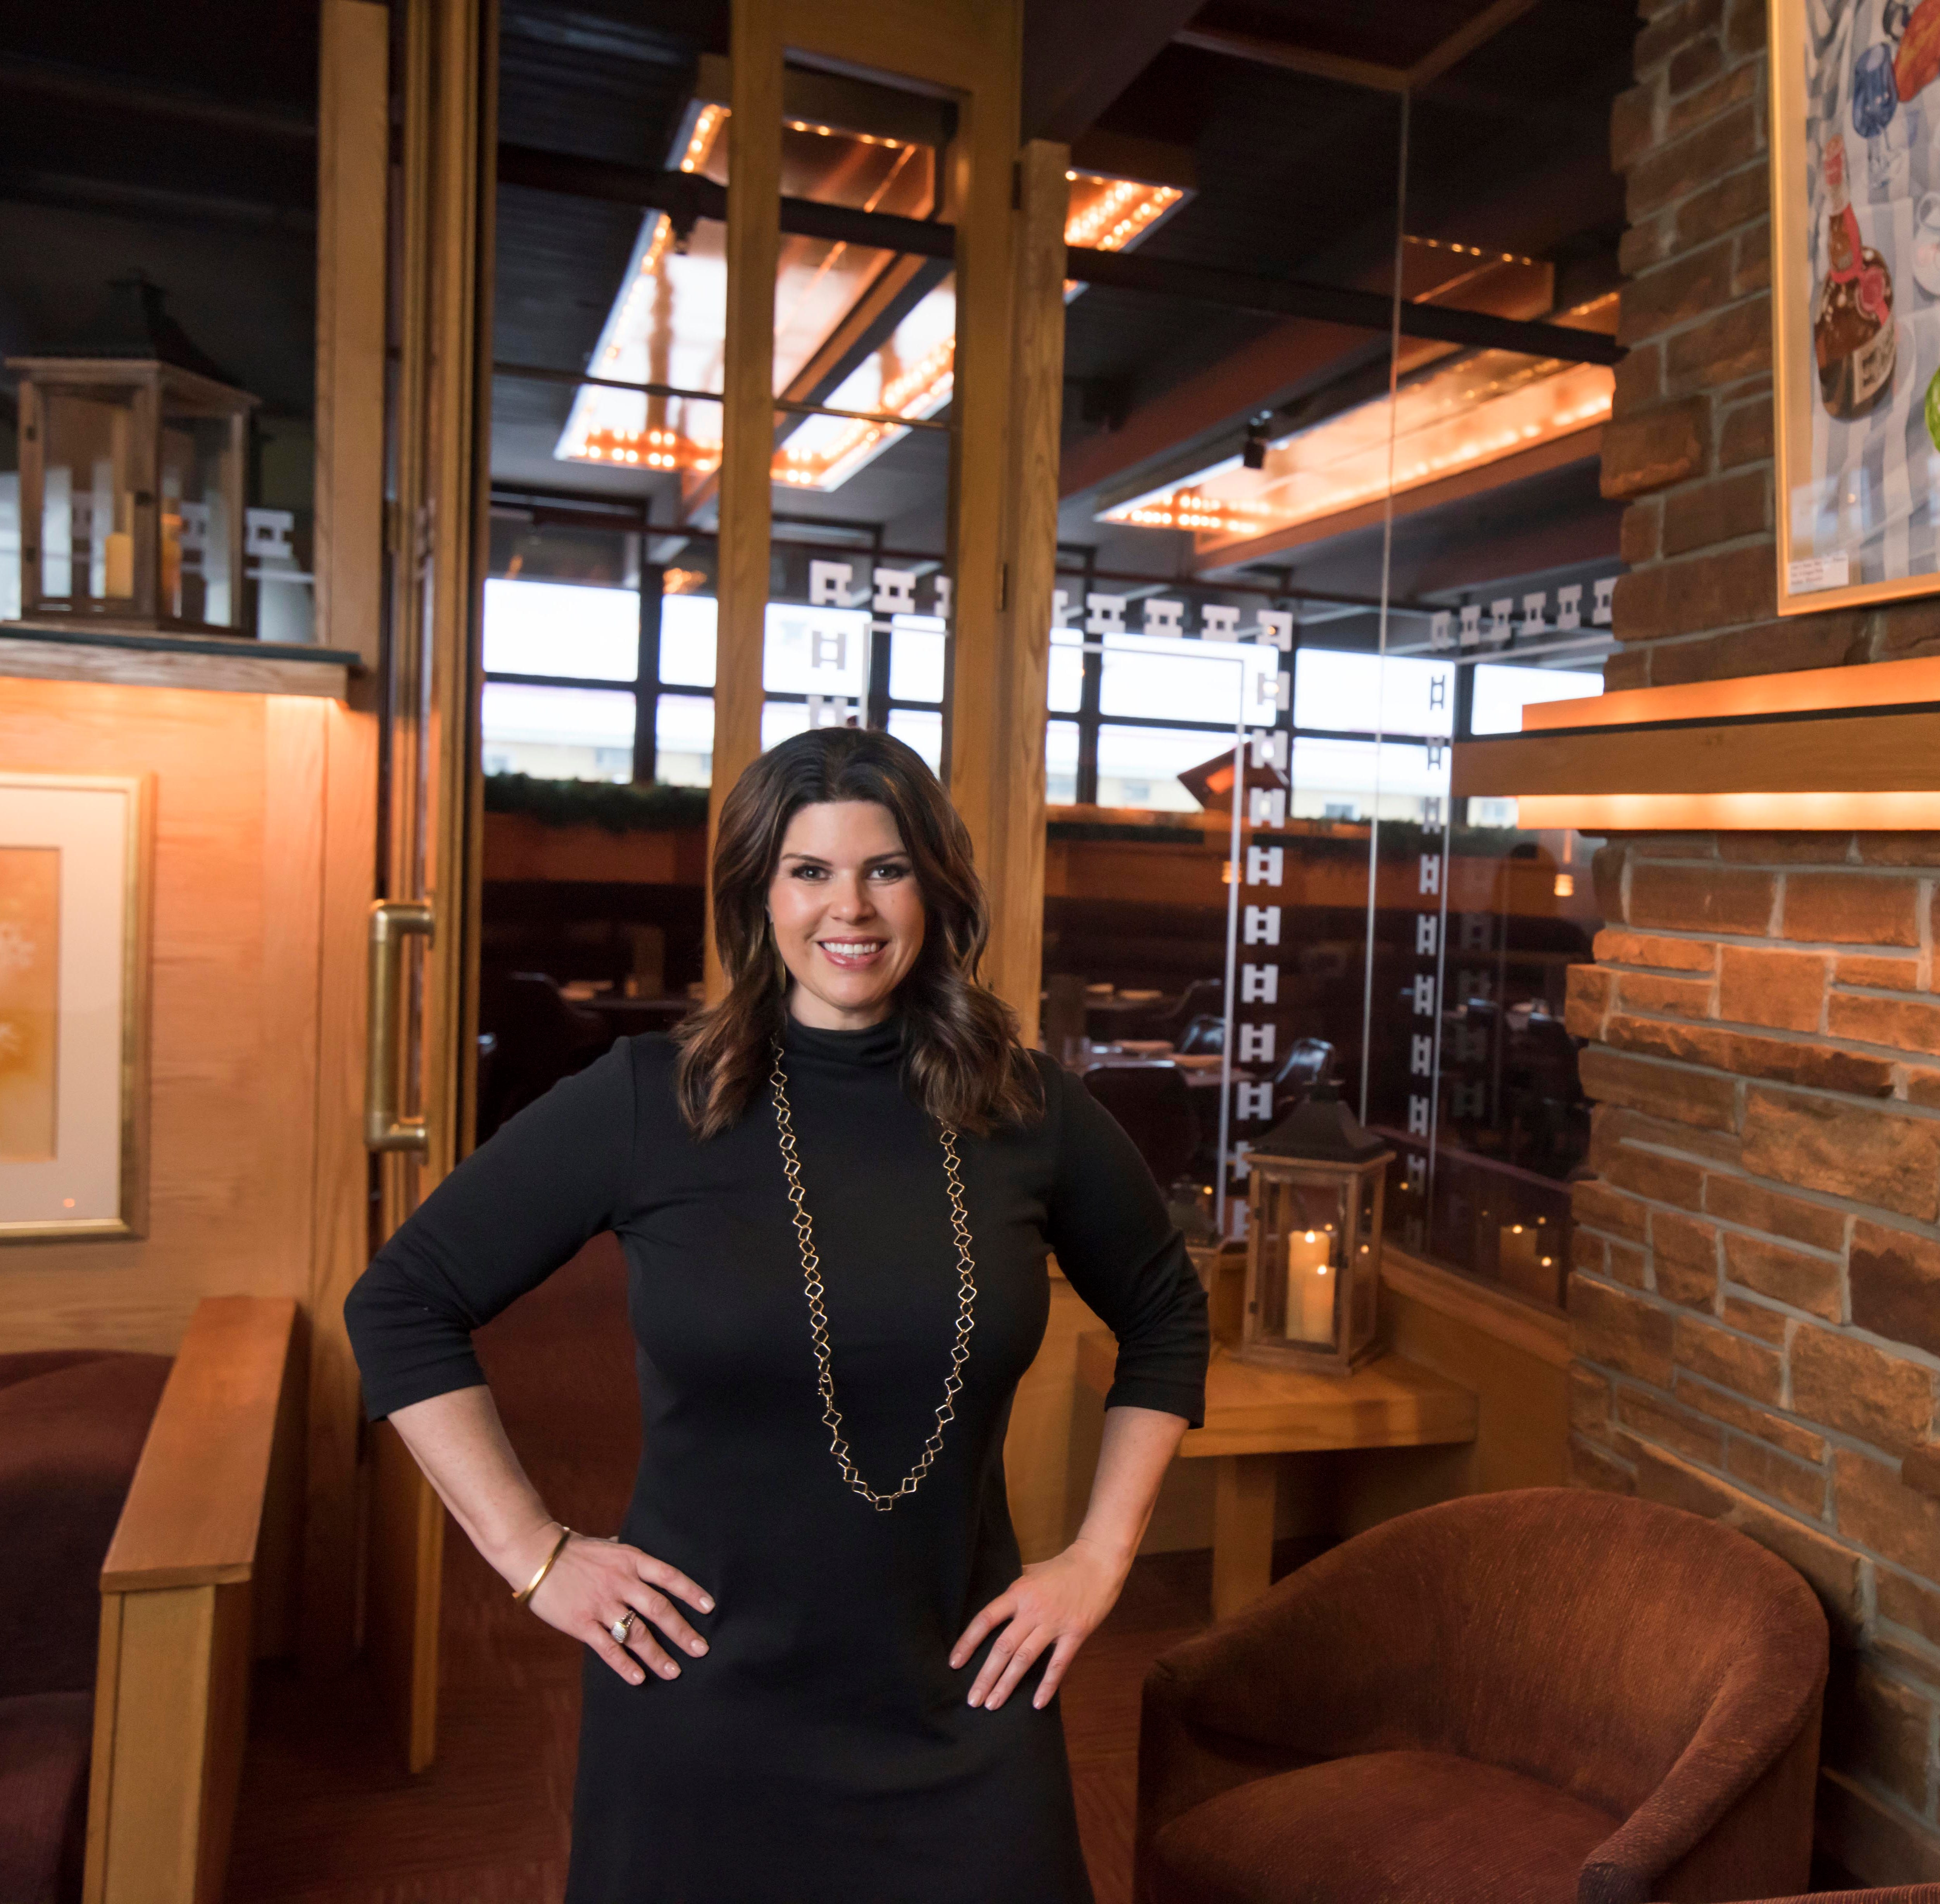 Del-Bar supper club in the Dells continues to thrive with a new, third-generation owner